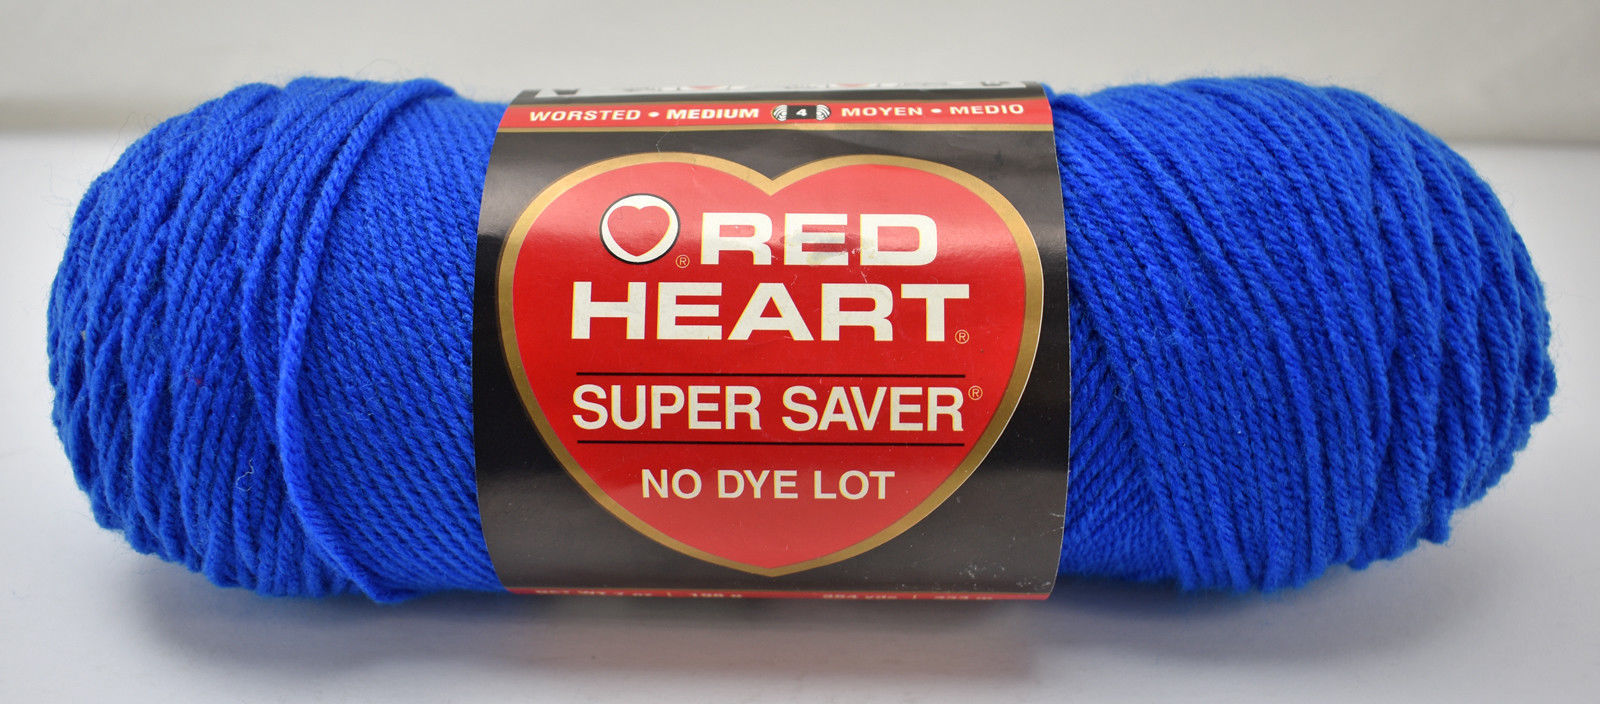 4 Ply Worsted Blue Suede 3945 Red Heart Super Saver Yarn E300 7 Oz Skein